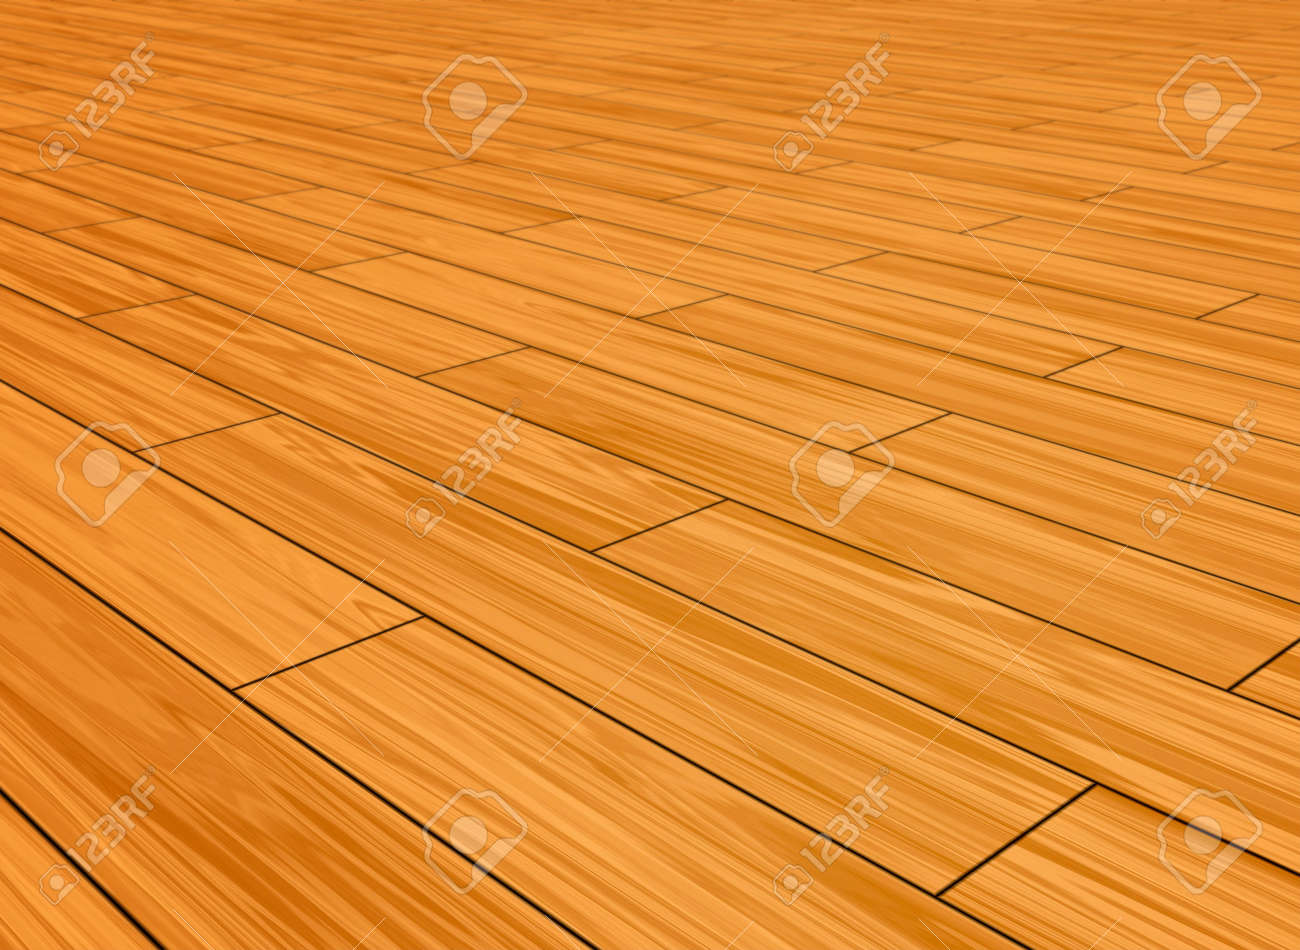 Stock Photo   Wooden Pine Laminate Floor Boards Background Image